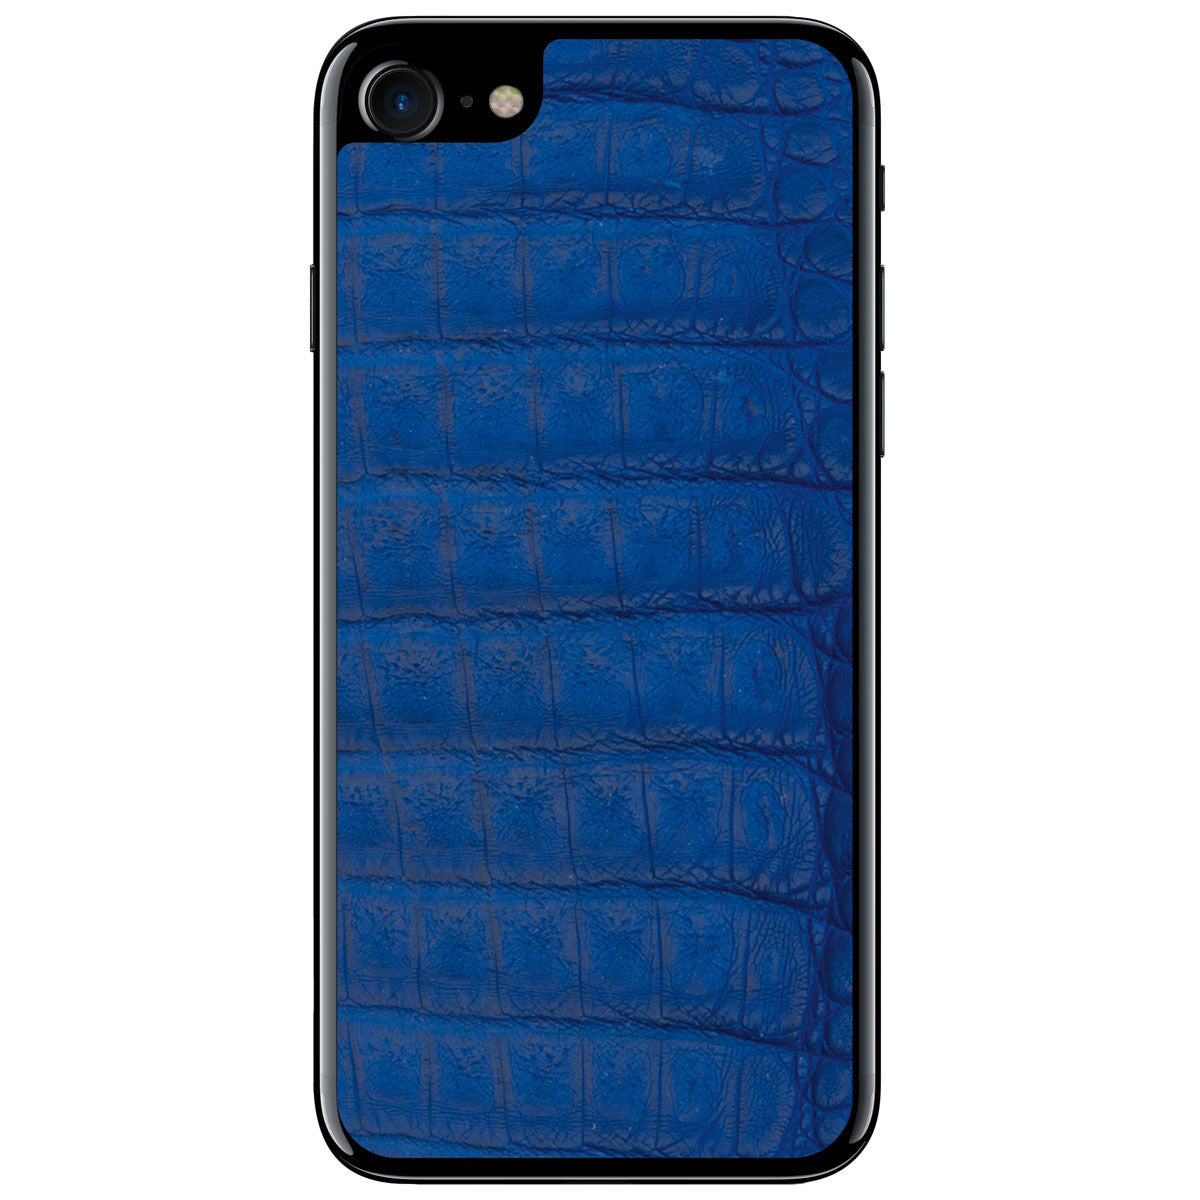 Cobalt Crocodile iPhone 8 Leather Skin